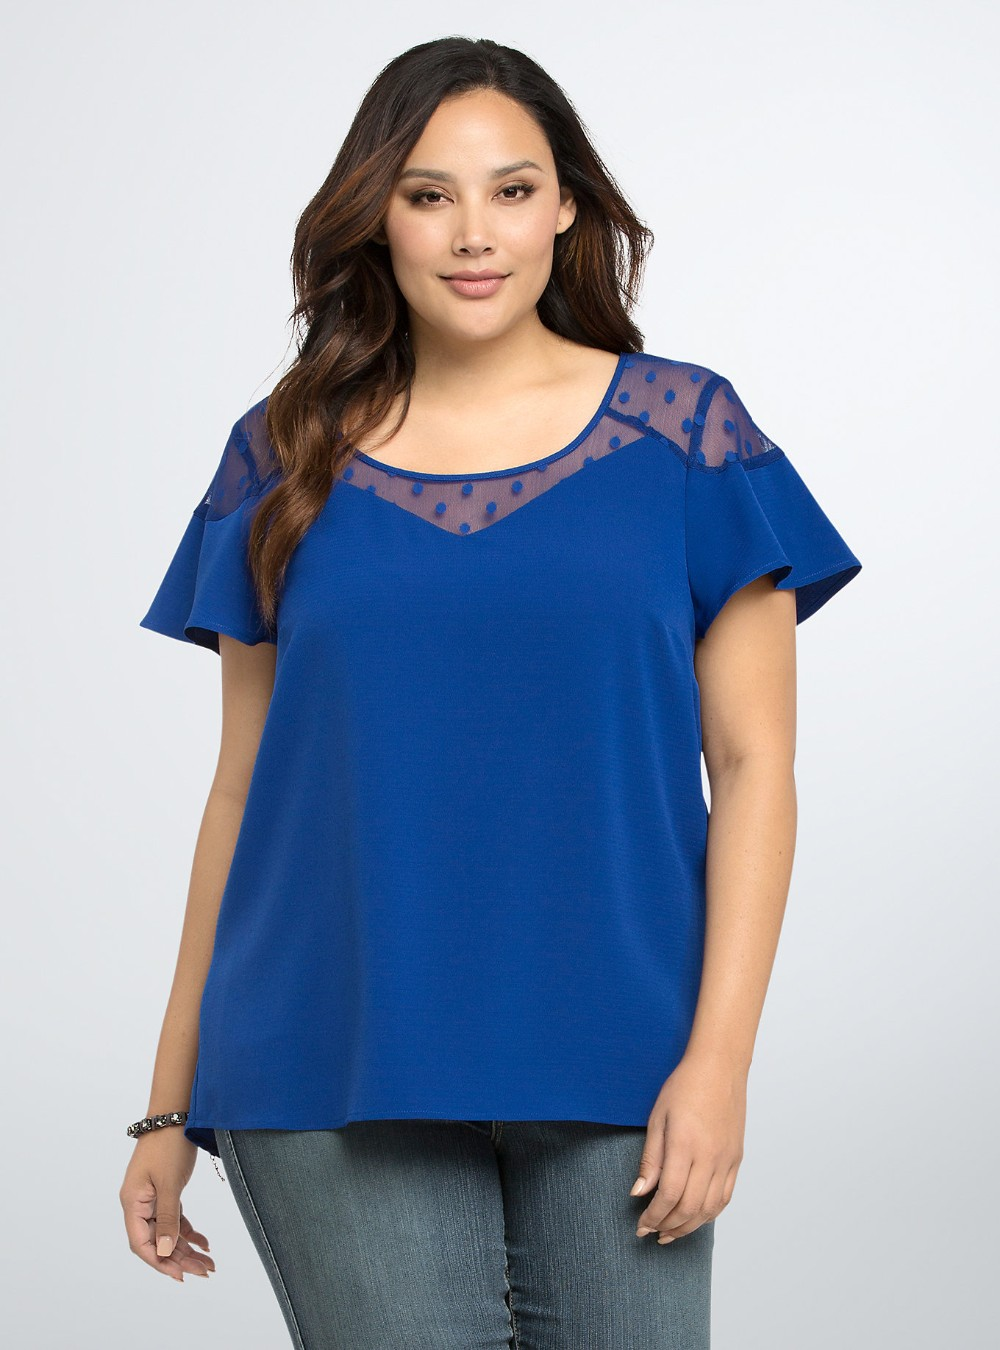 Find great deals on eBay for blouse size large. Shop with confidence.